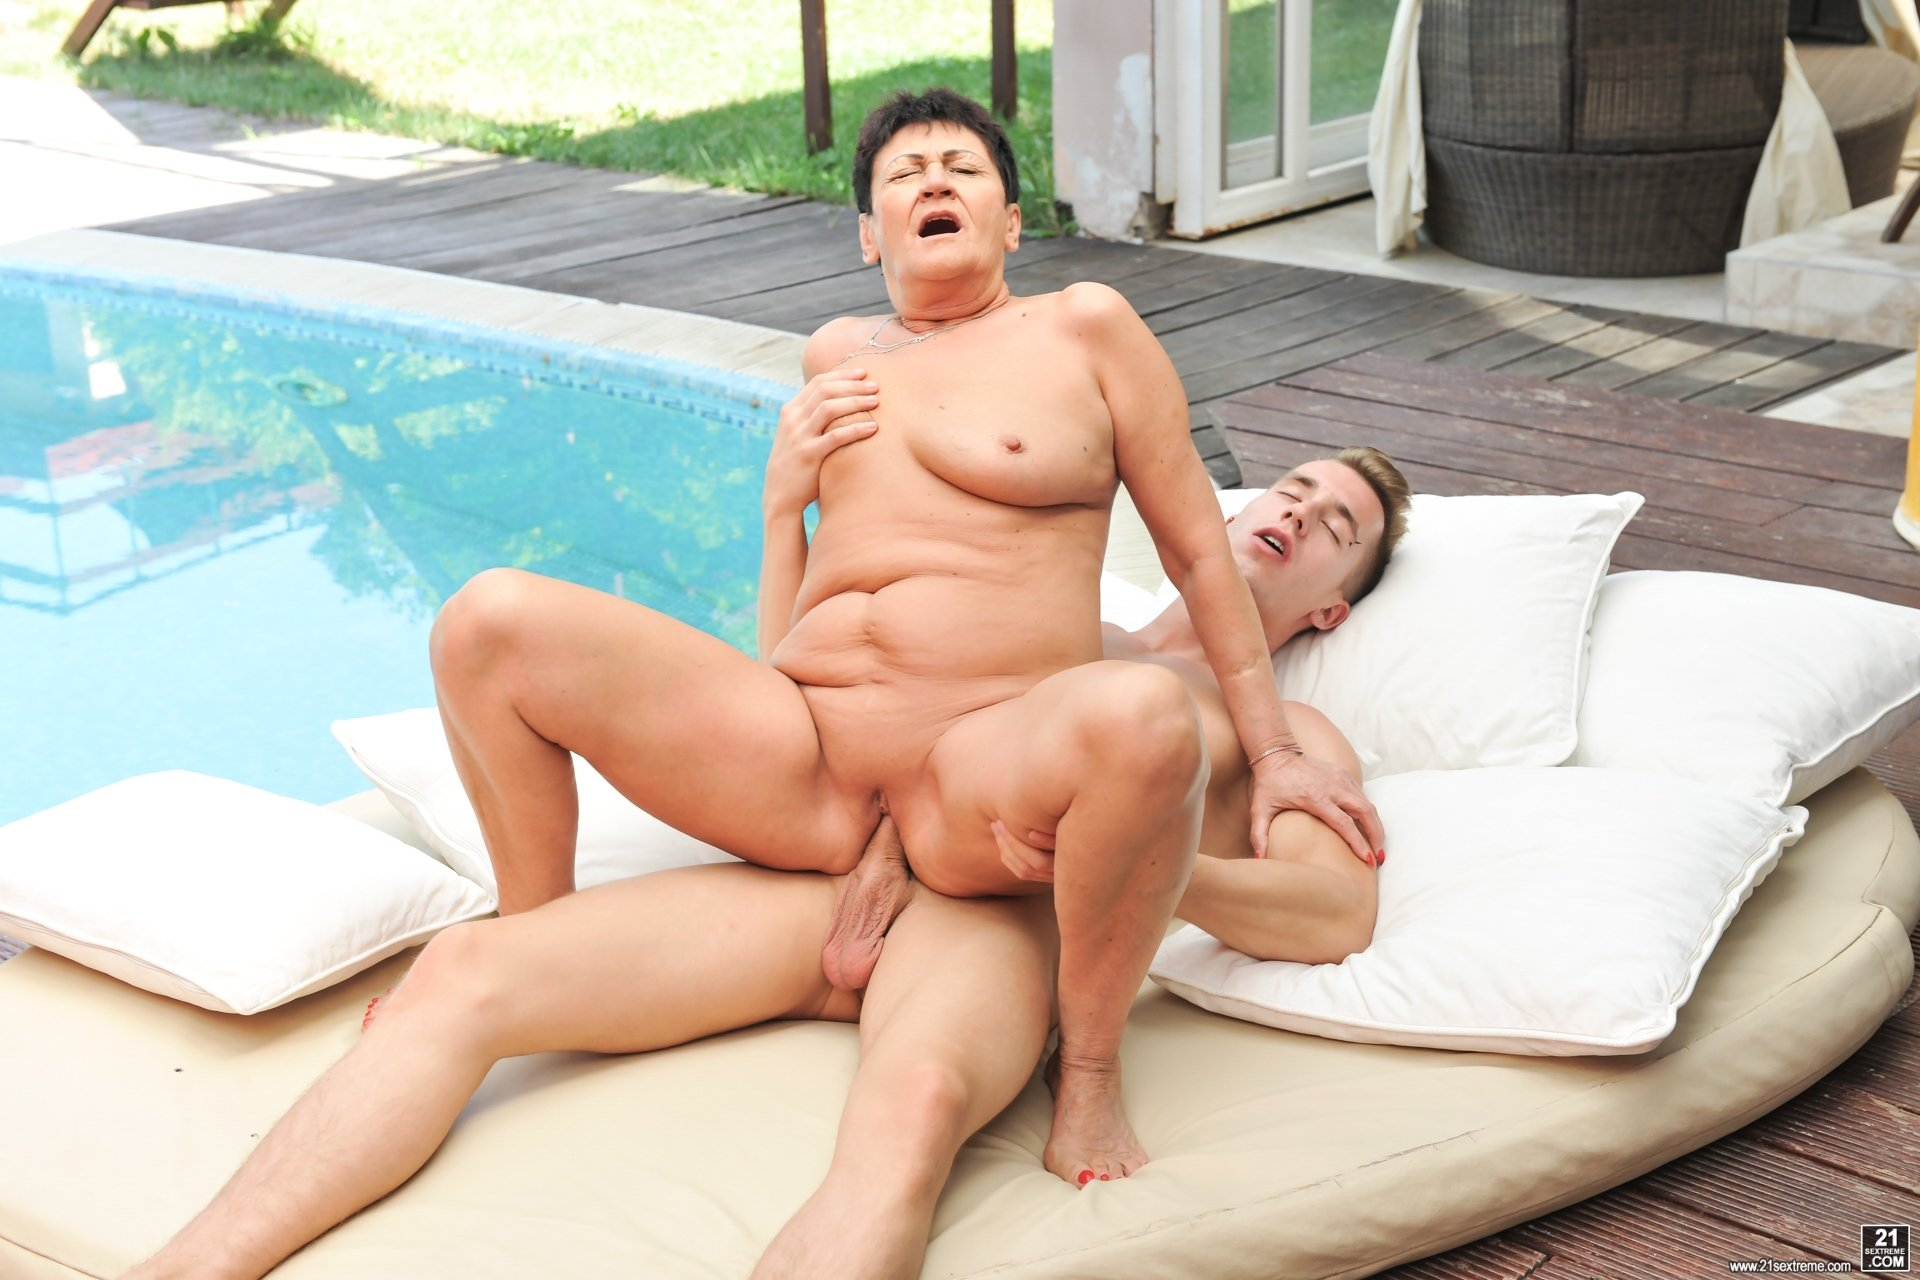 Fat women fucking pictures live homemade porn